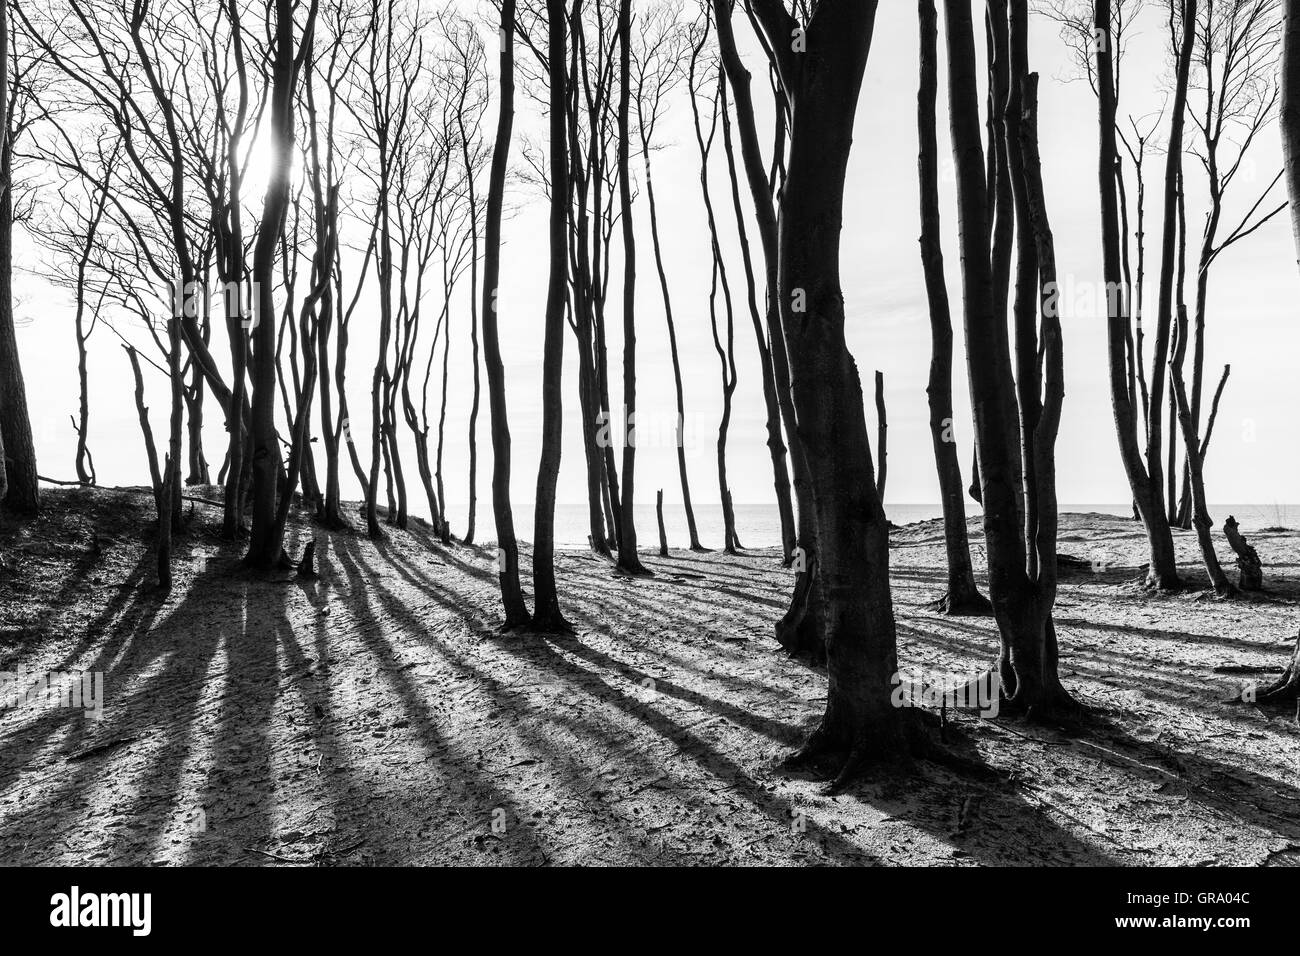 Black And White Picture Of The Forest On The Island Darss - Stock Image